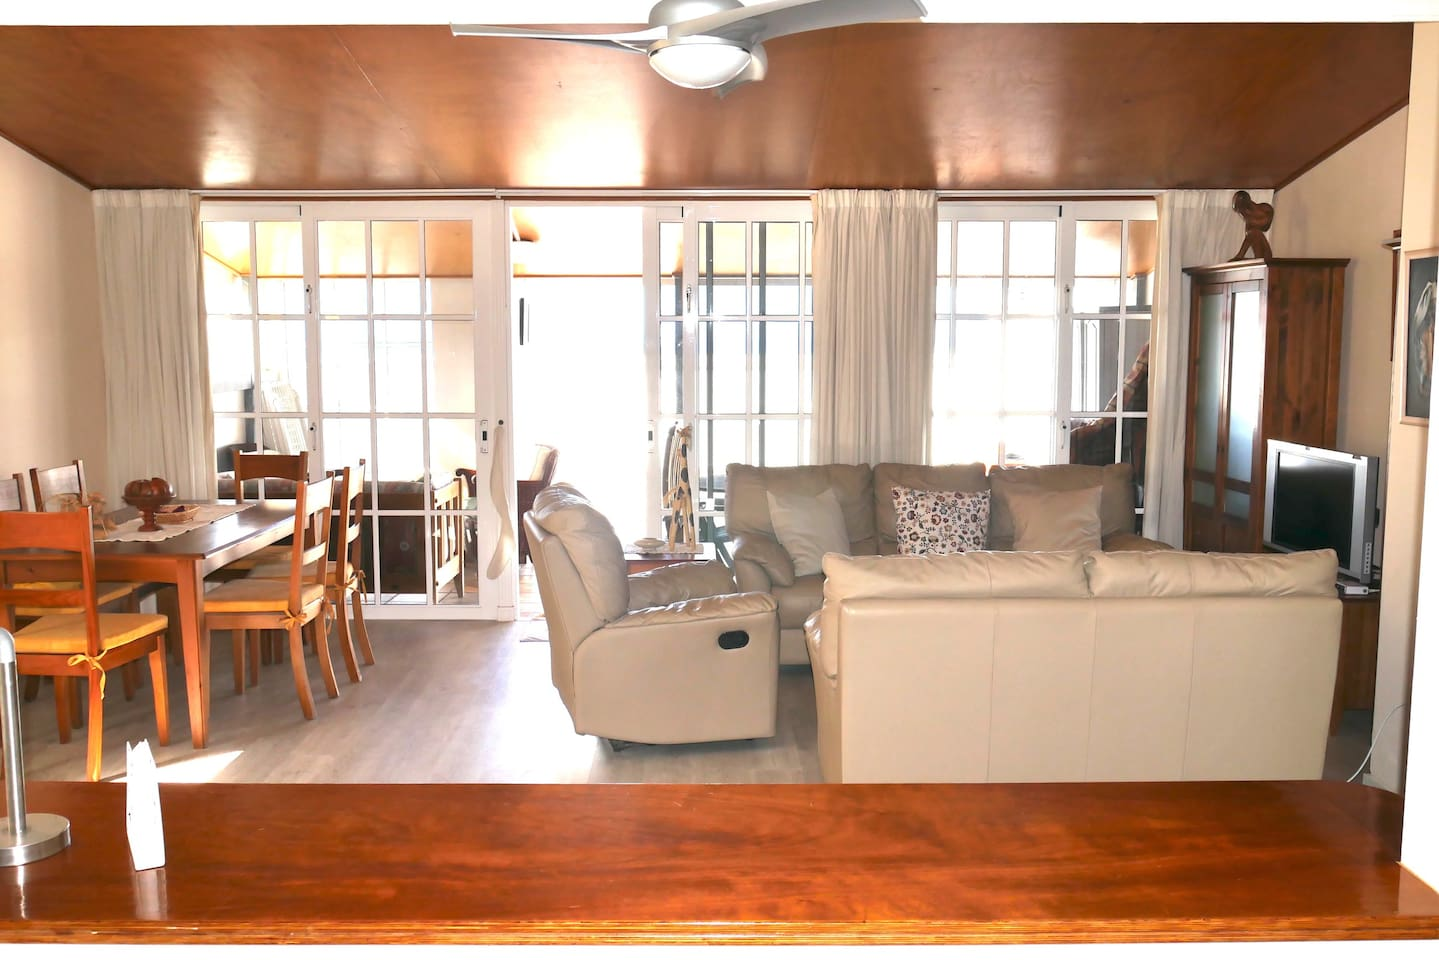 Lounge and dining area with balcony door.